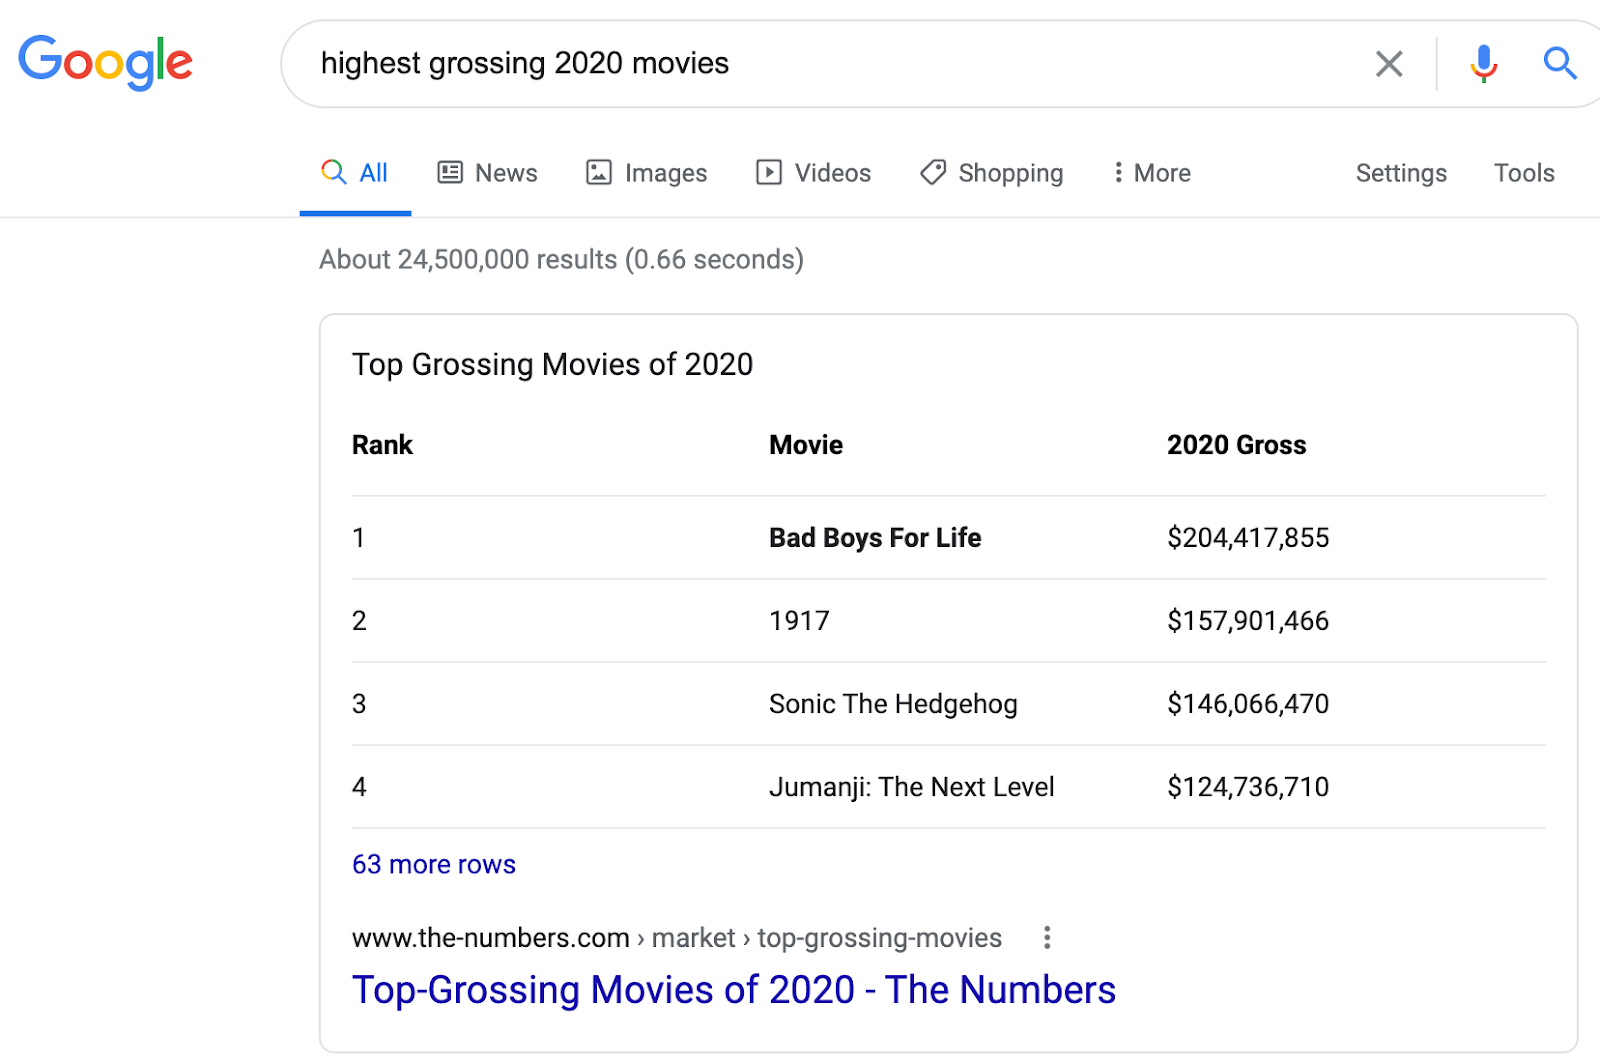 featured snippets list movies